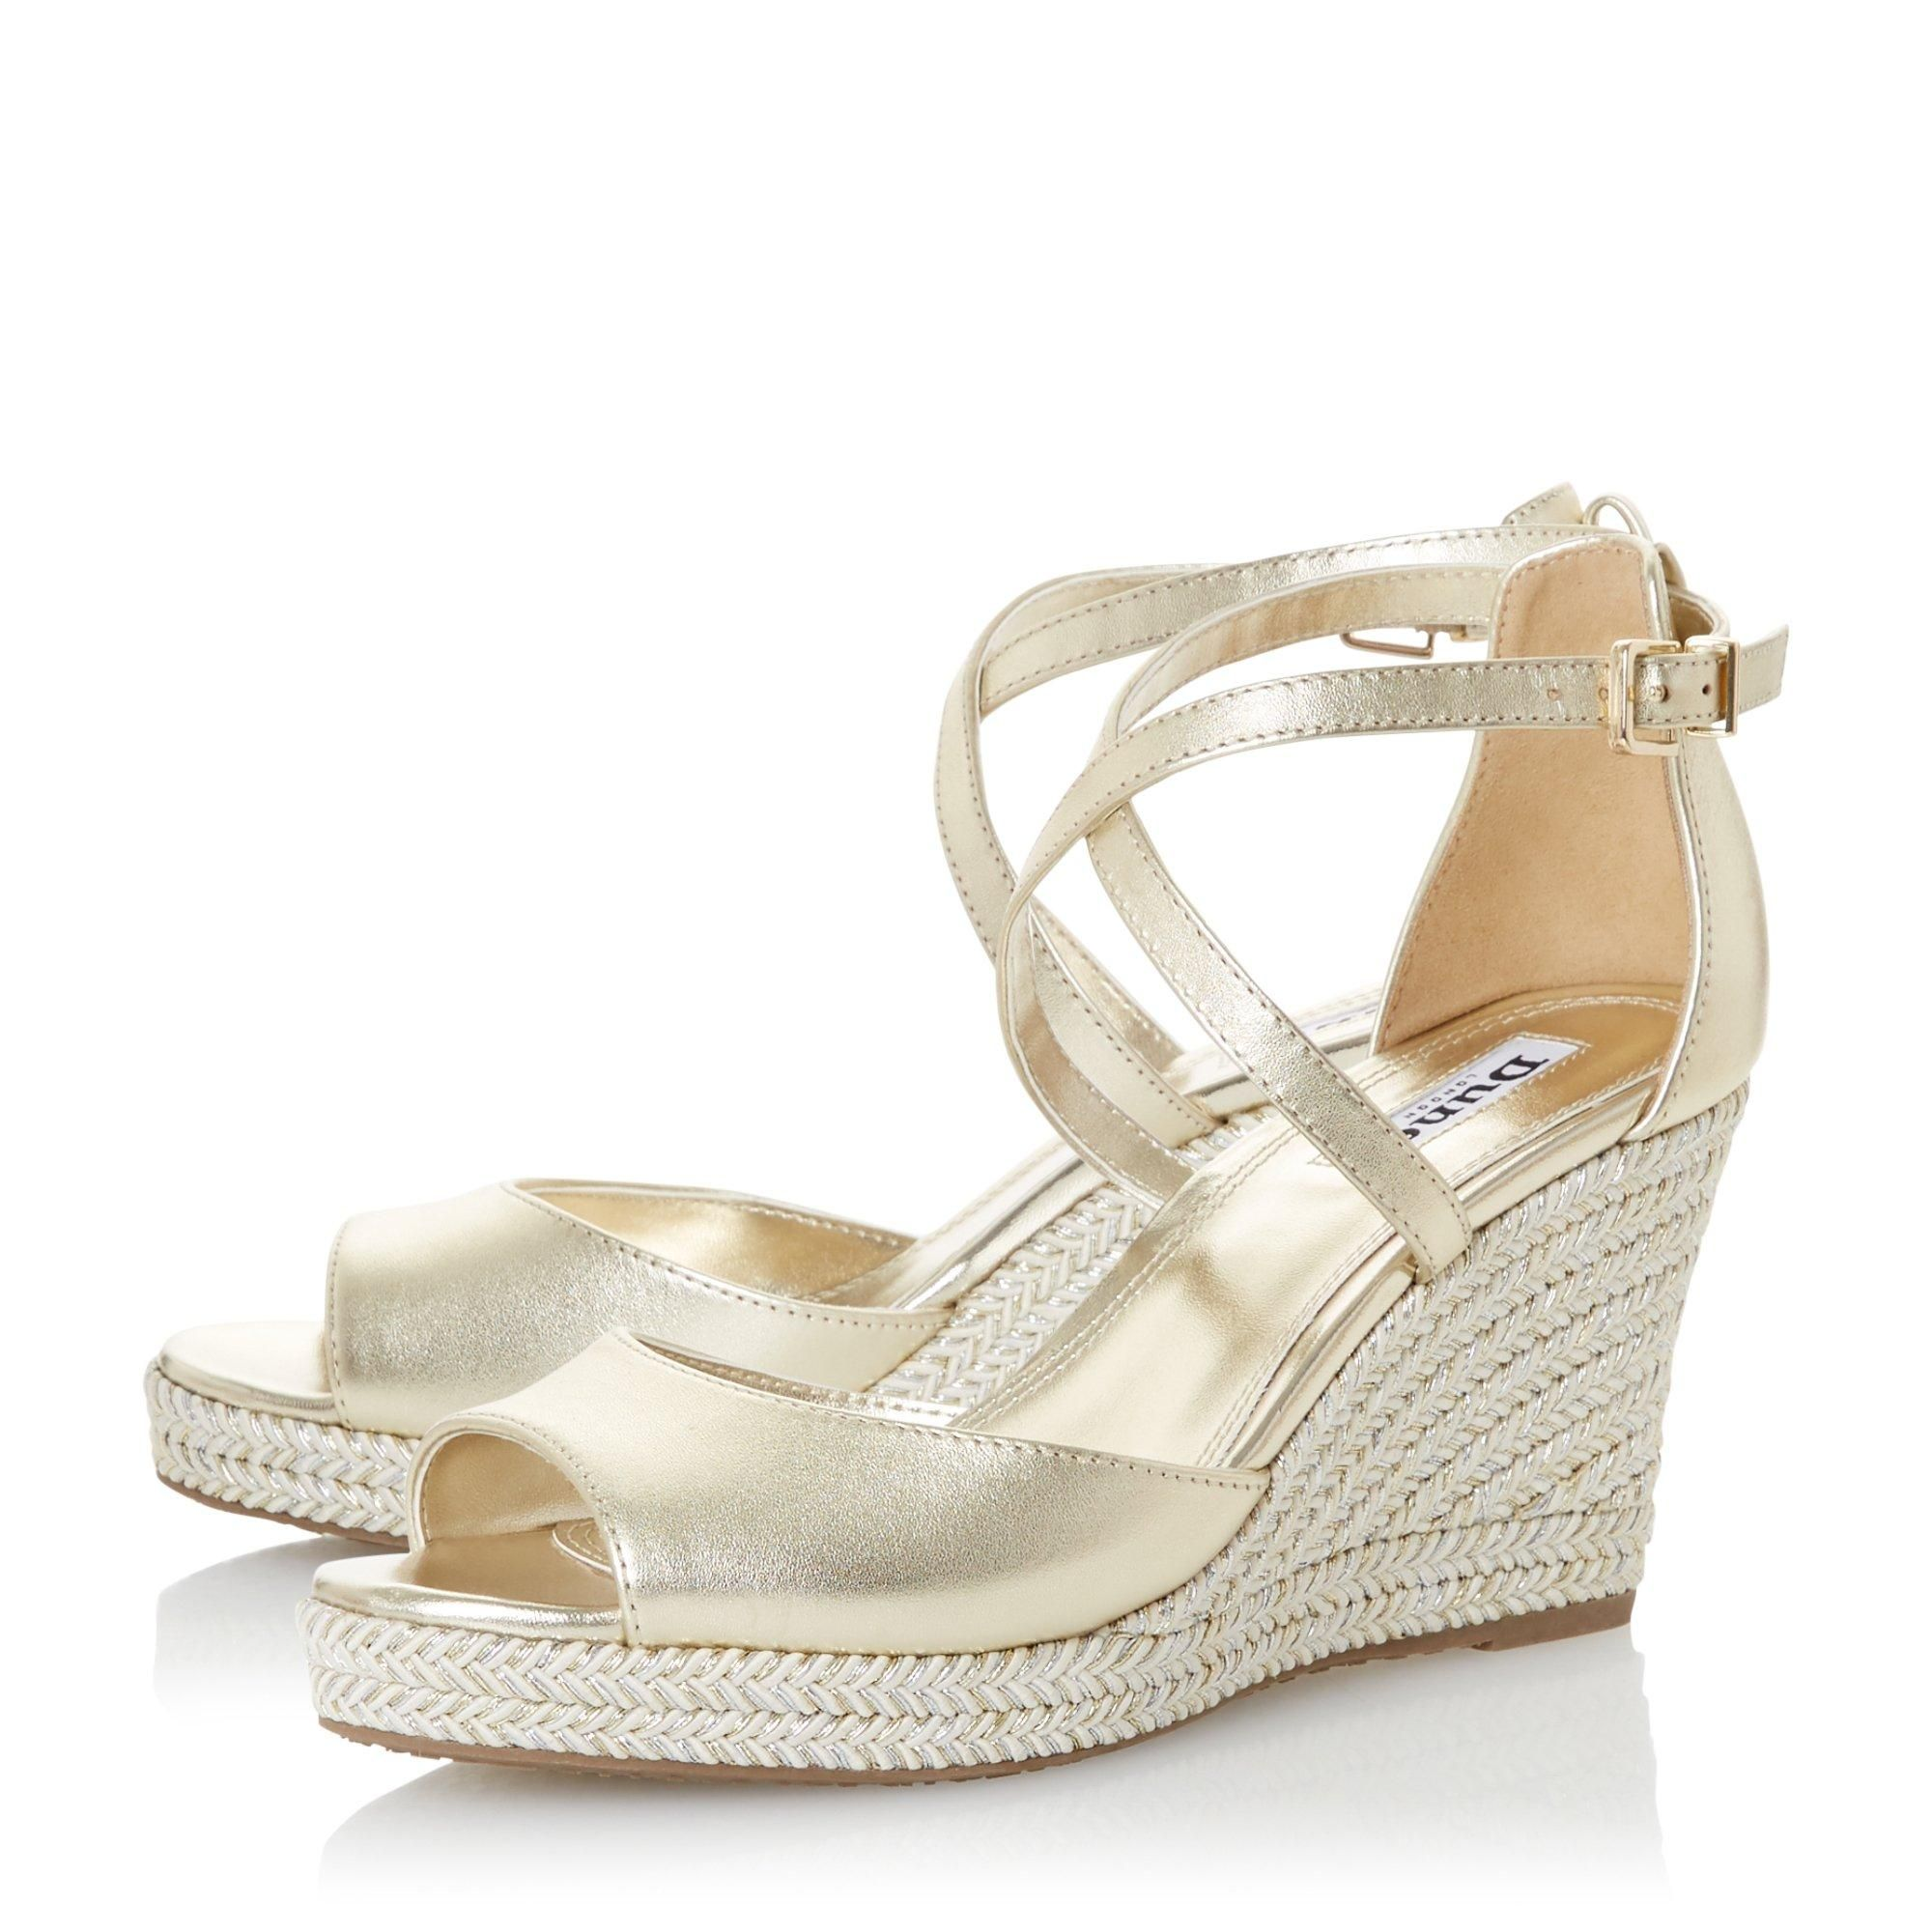 Dune Ladies KIMCHI Cross Strap Espadrille Wedge Sandals